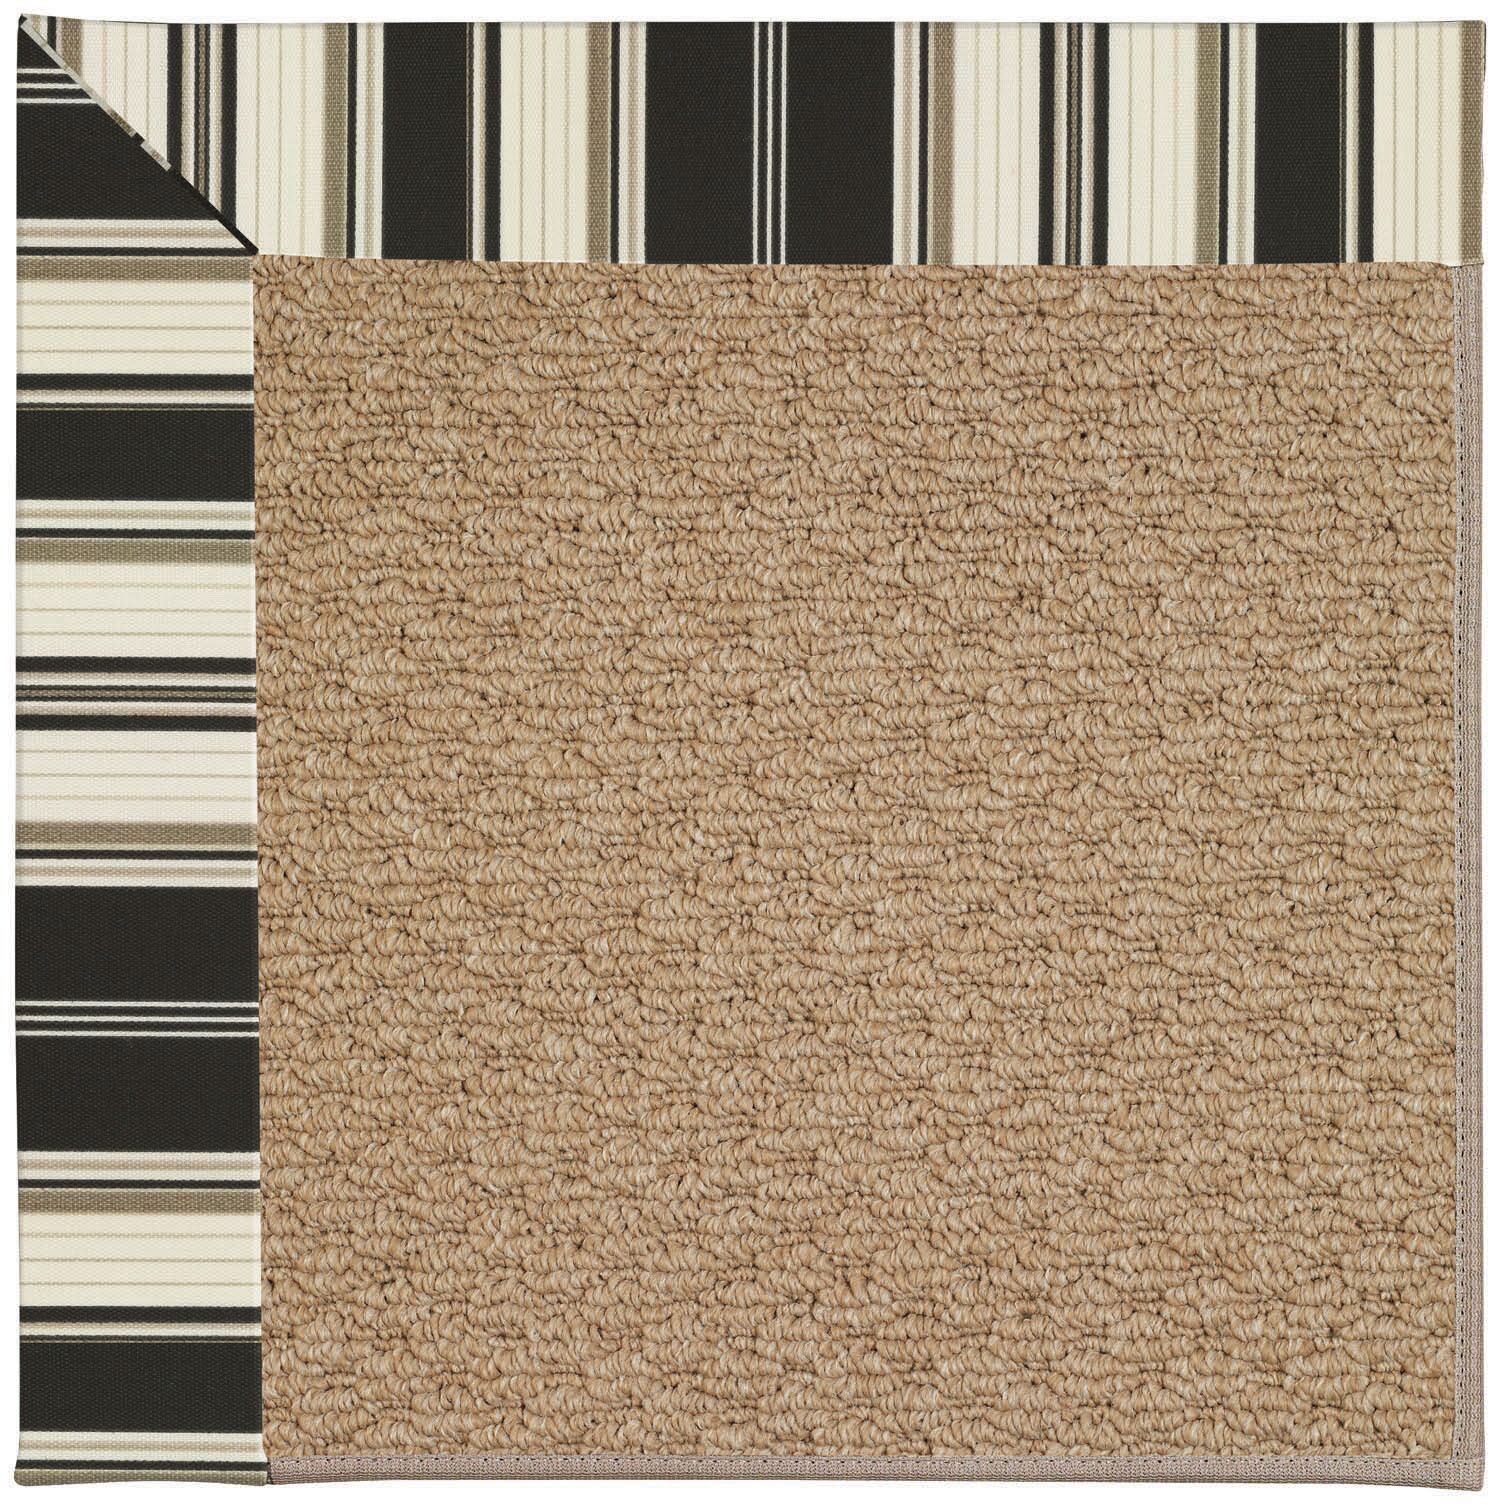 Lisle Machine Tufted Onyx/Brown Indoor/Outdoor Area Rug Rug Size: Square 8'